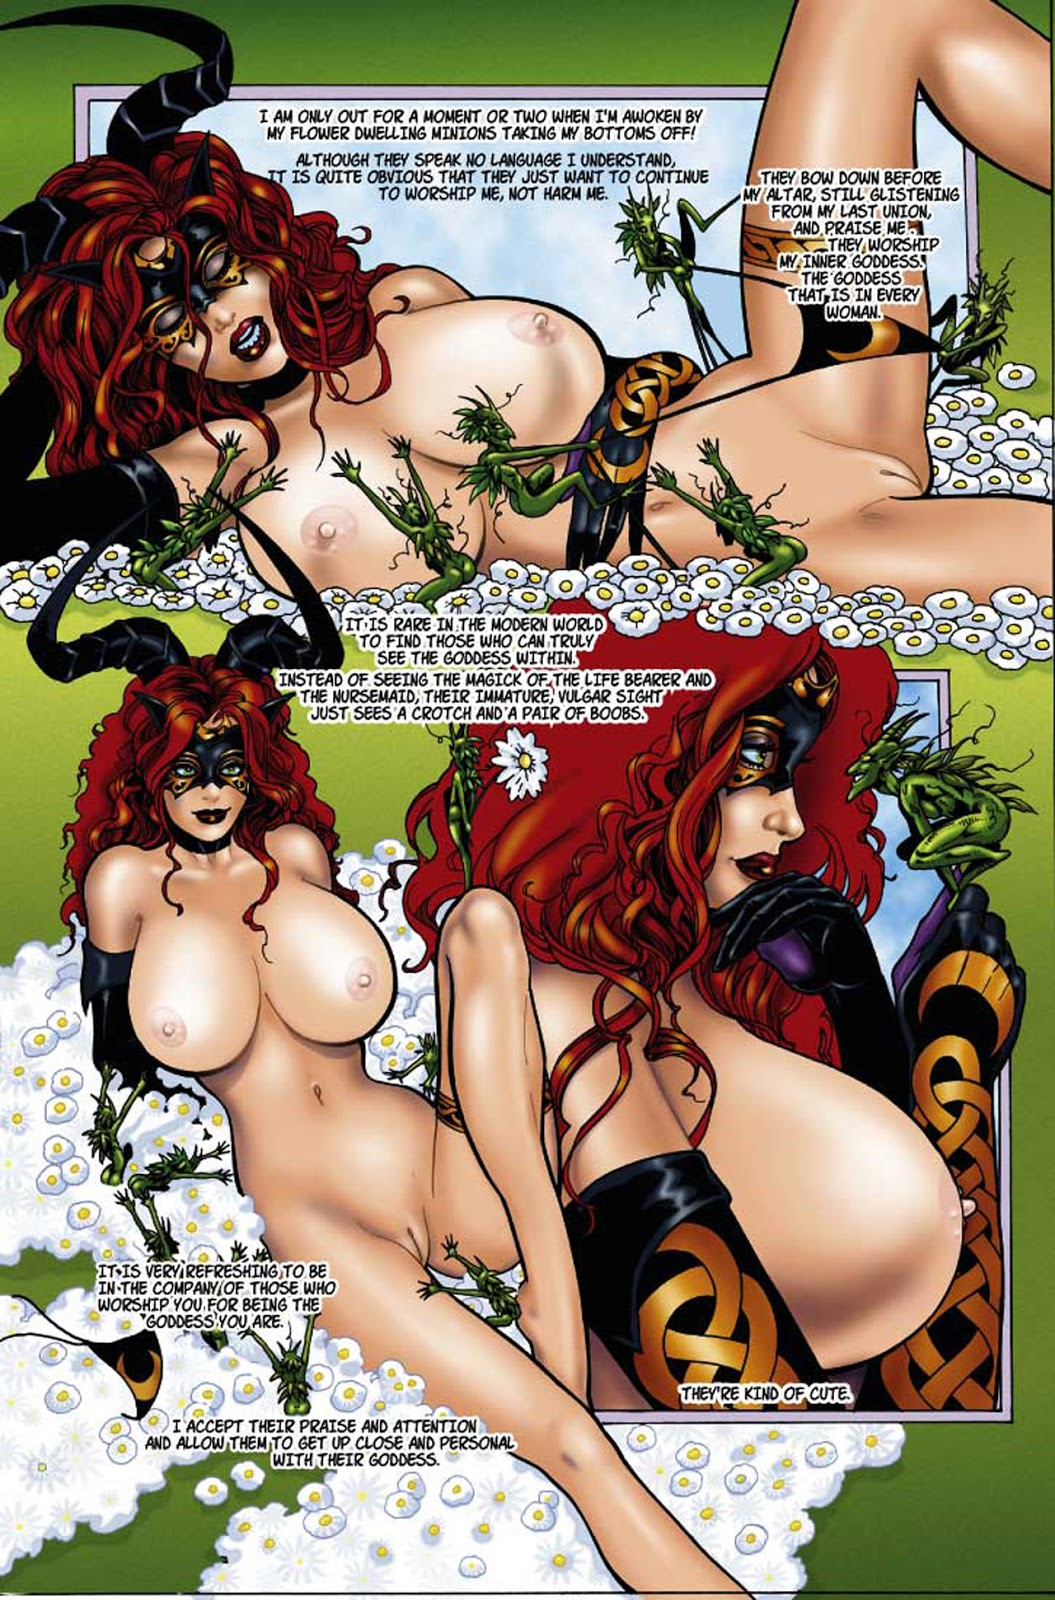 witch rose of black tarot the nudity Jack the ripper fate hentai